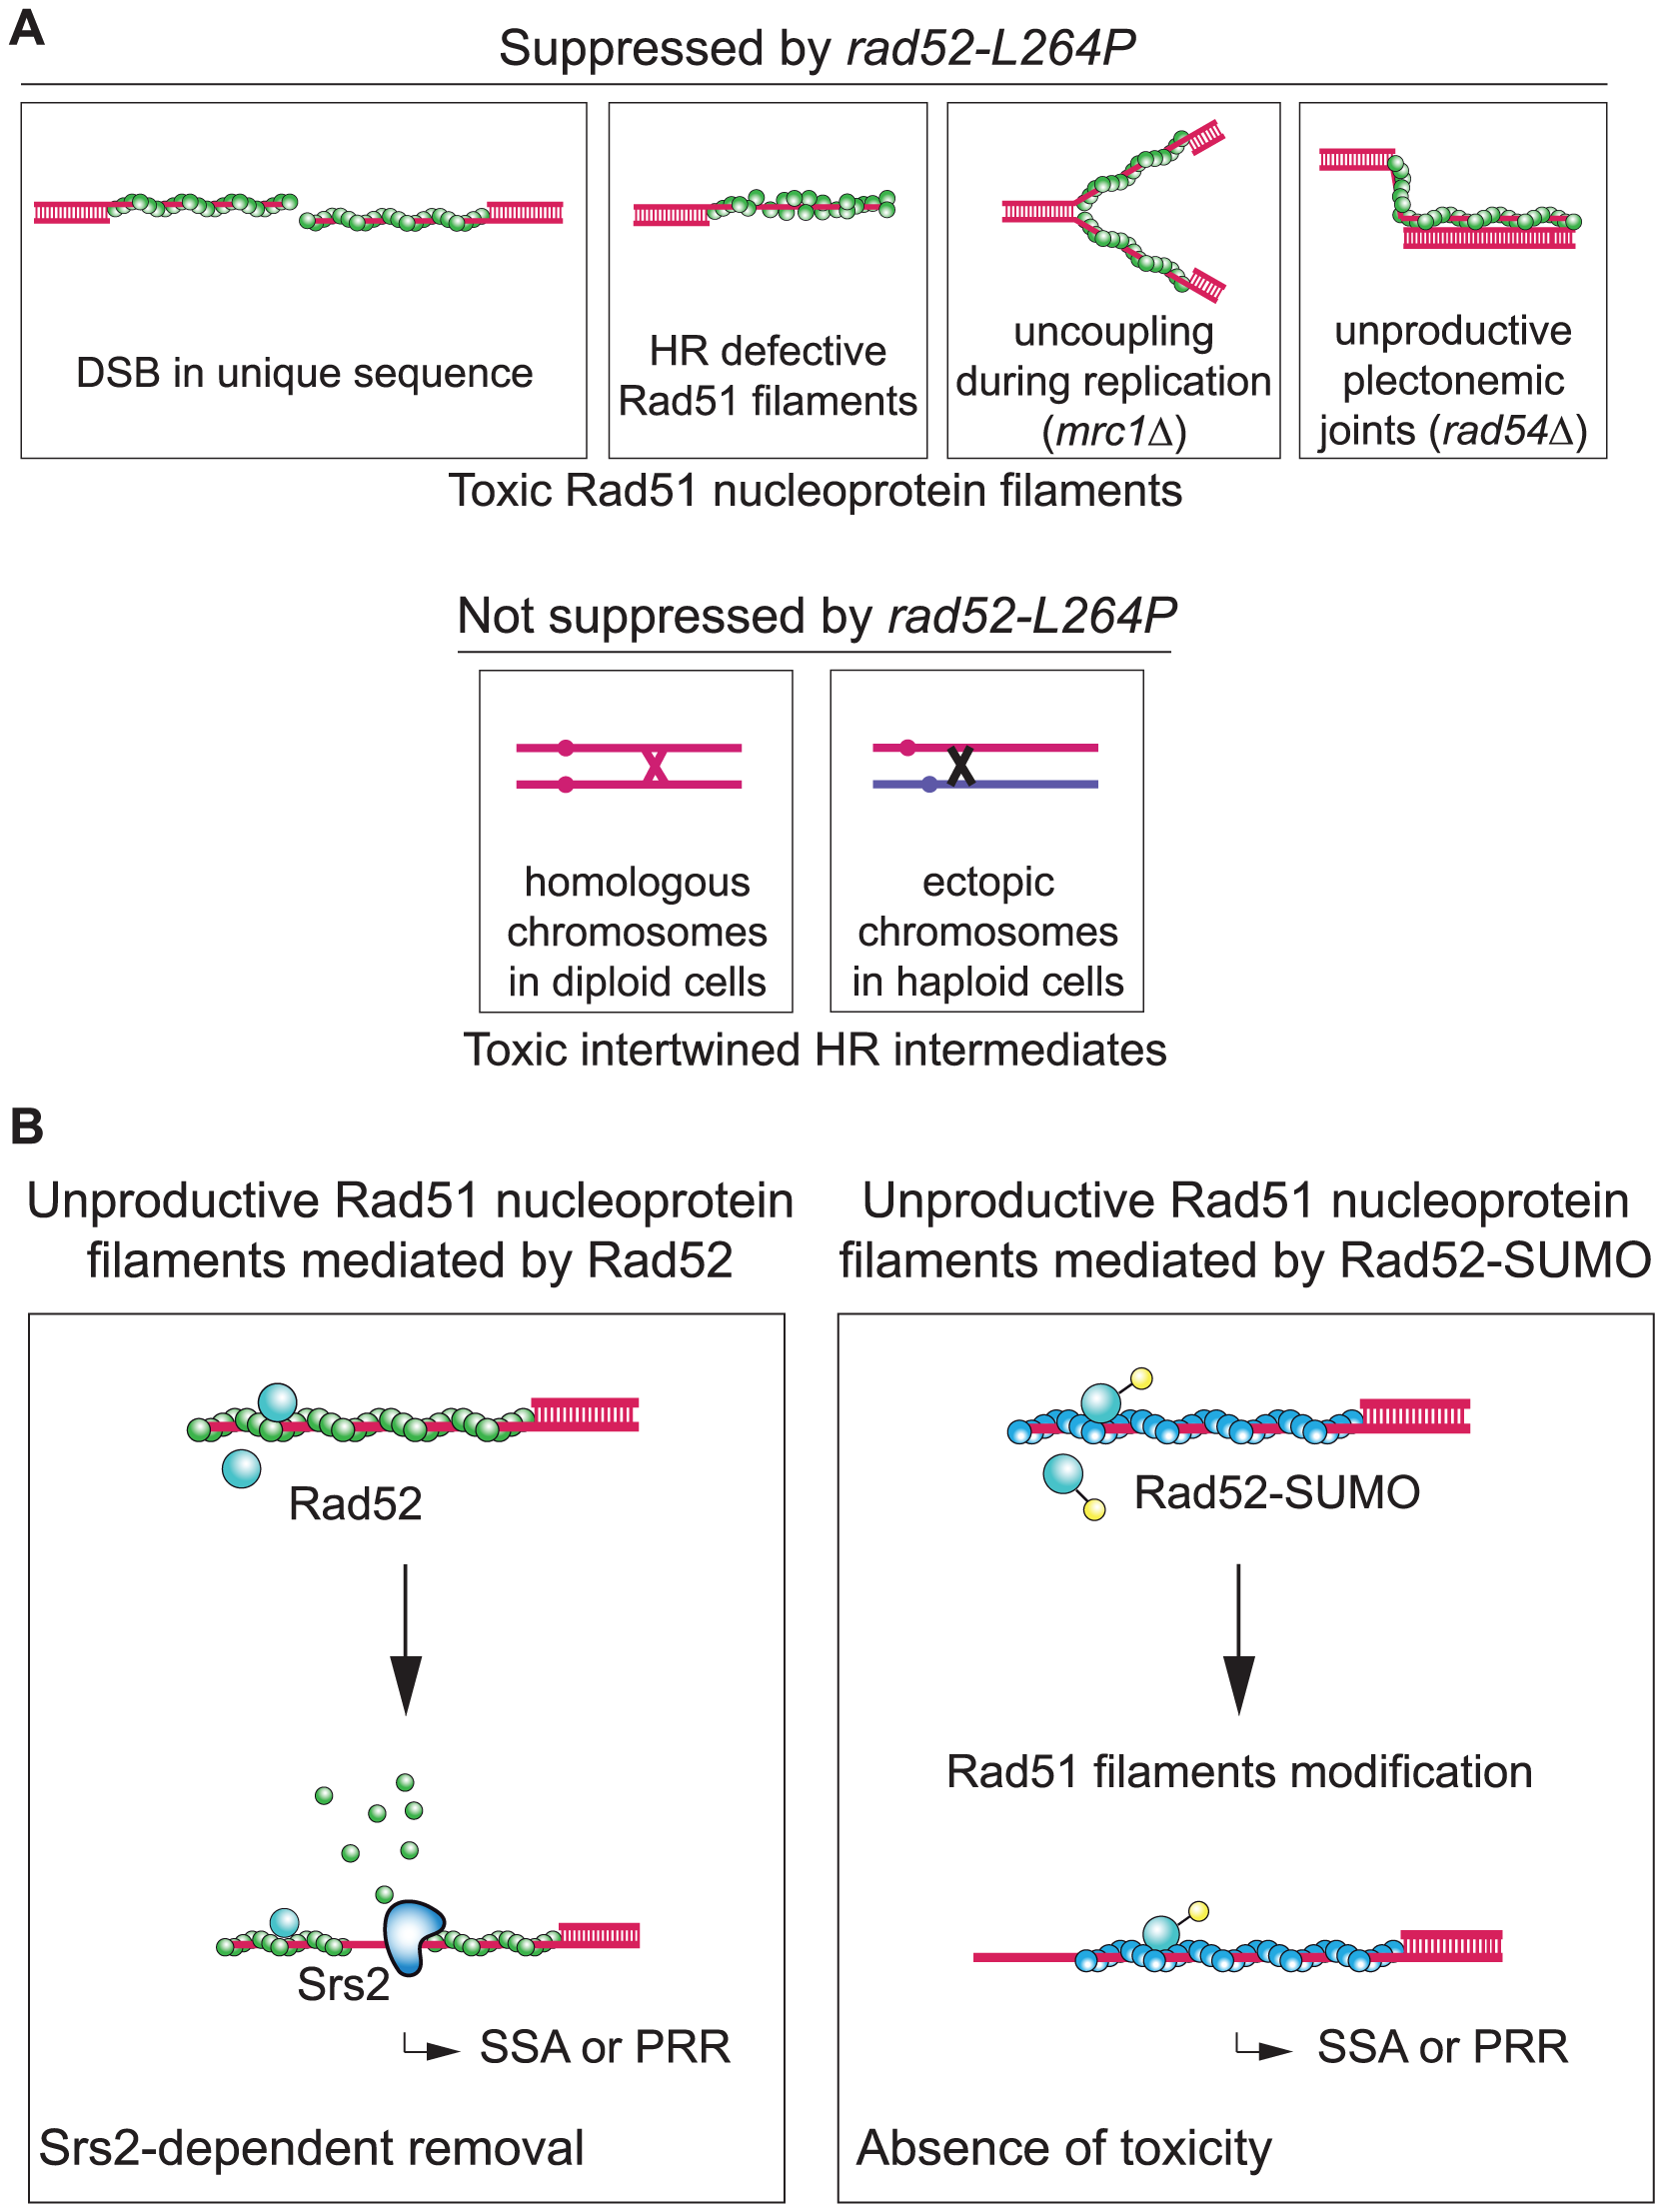 Rad52 sumoylation prevents the toxicity of unproductive Rad51 filaments.